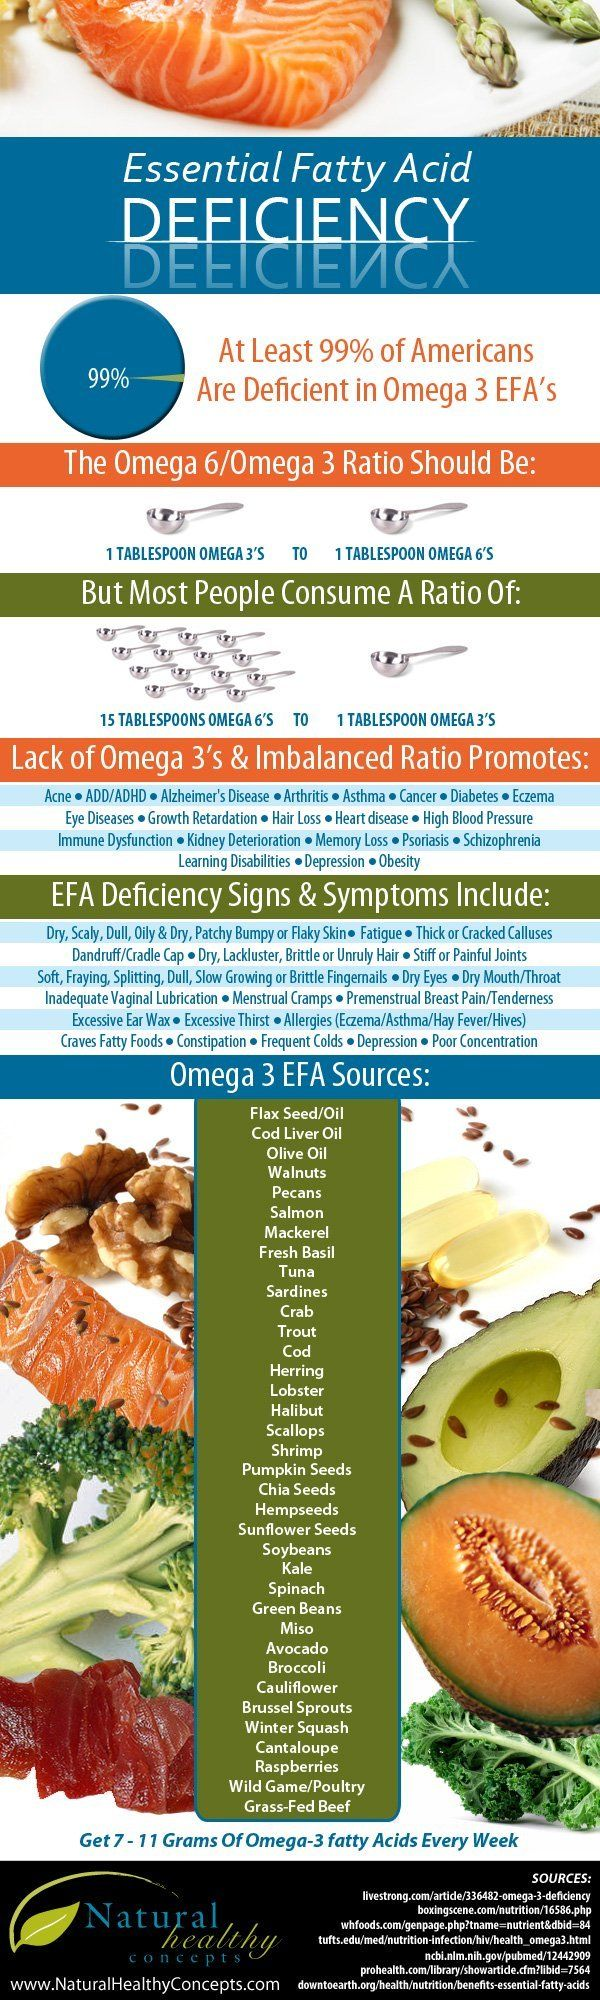 essential fatty acid deficiency infographic omega 3 acids are very important for pcos - Omax 3